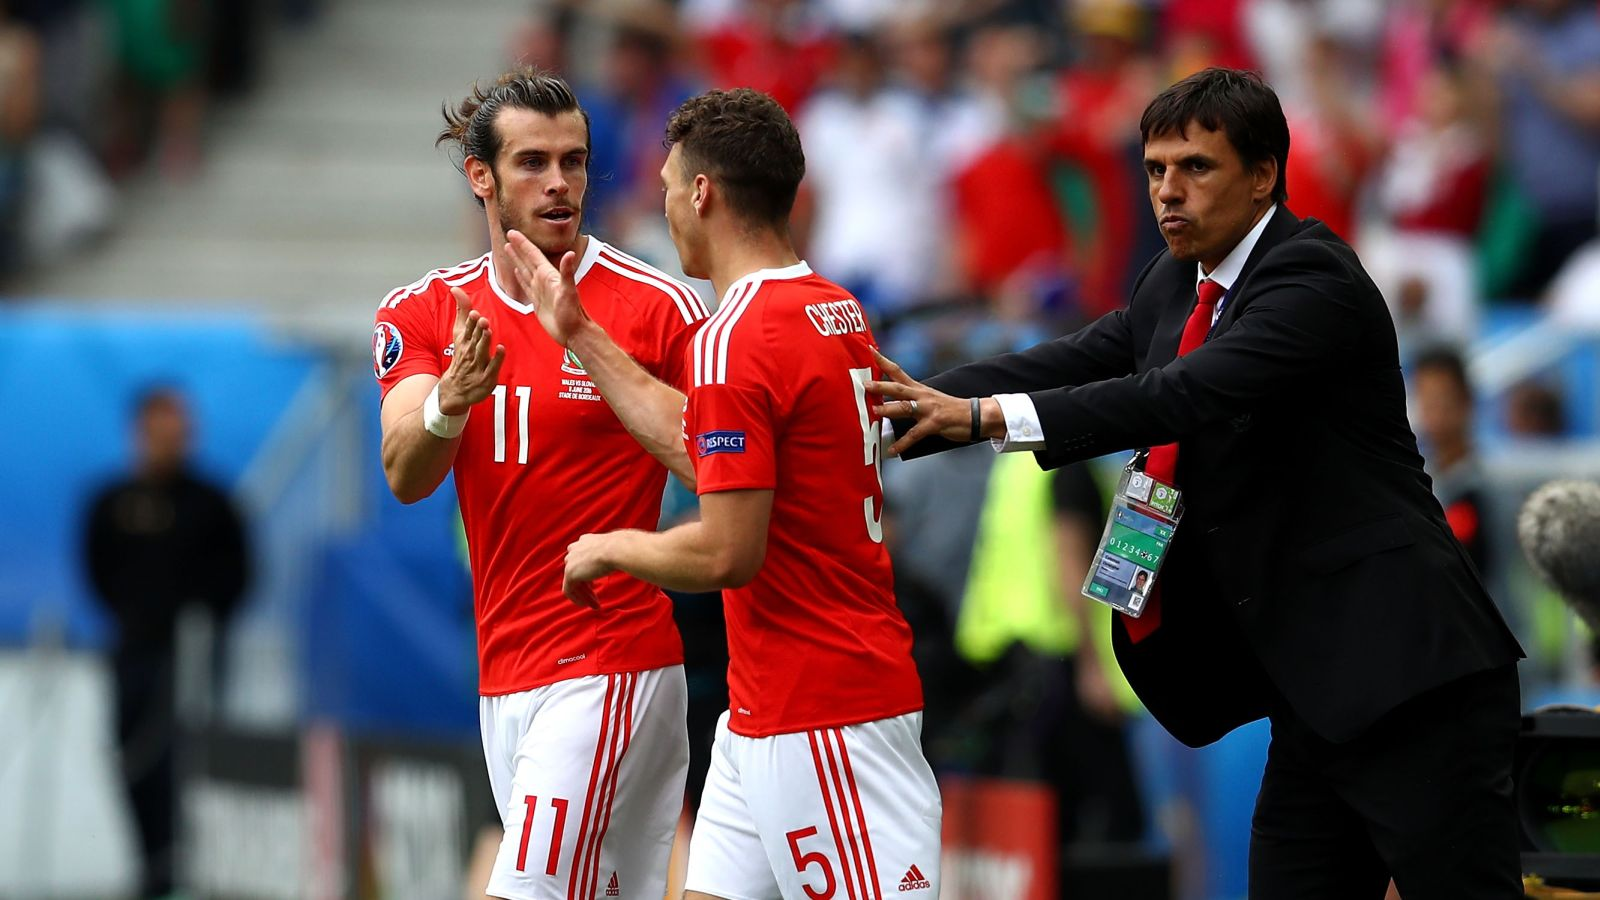 None of England's strikers are in the same class as Bale, says Chester